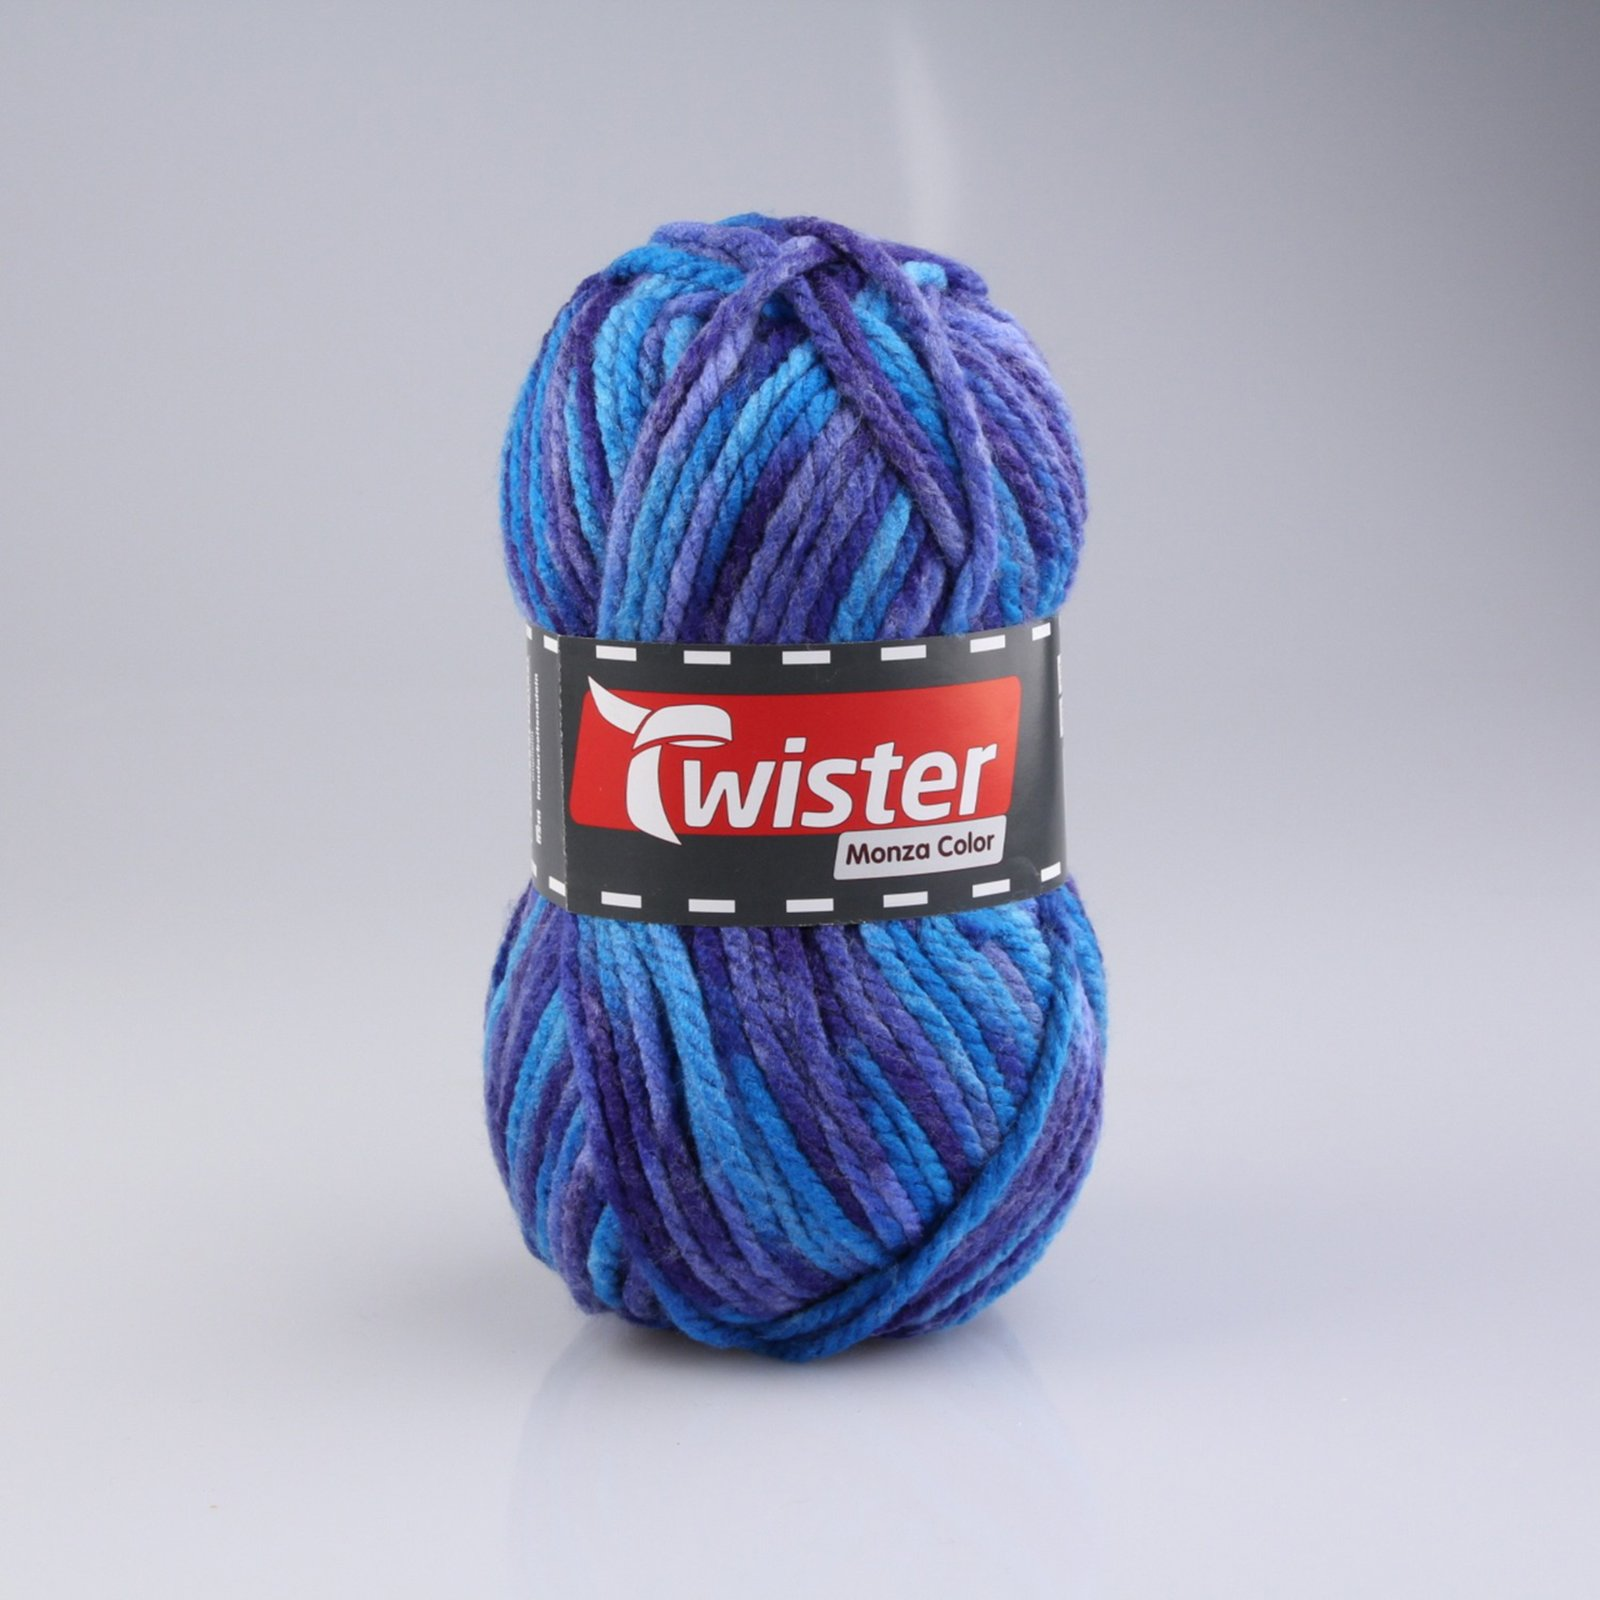 Wolle TWISTER MONZA COLOR - blau-rost-braun - 200g